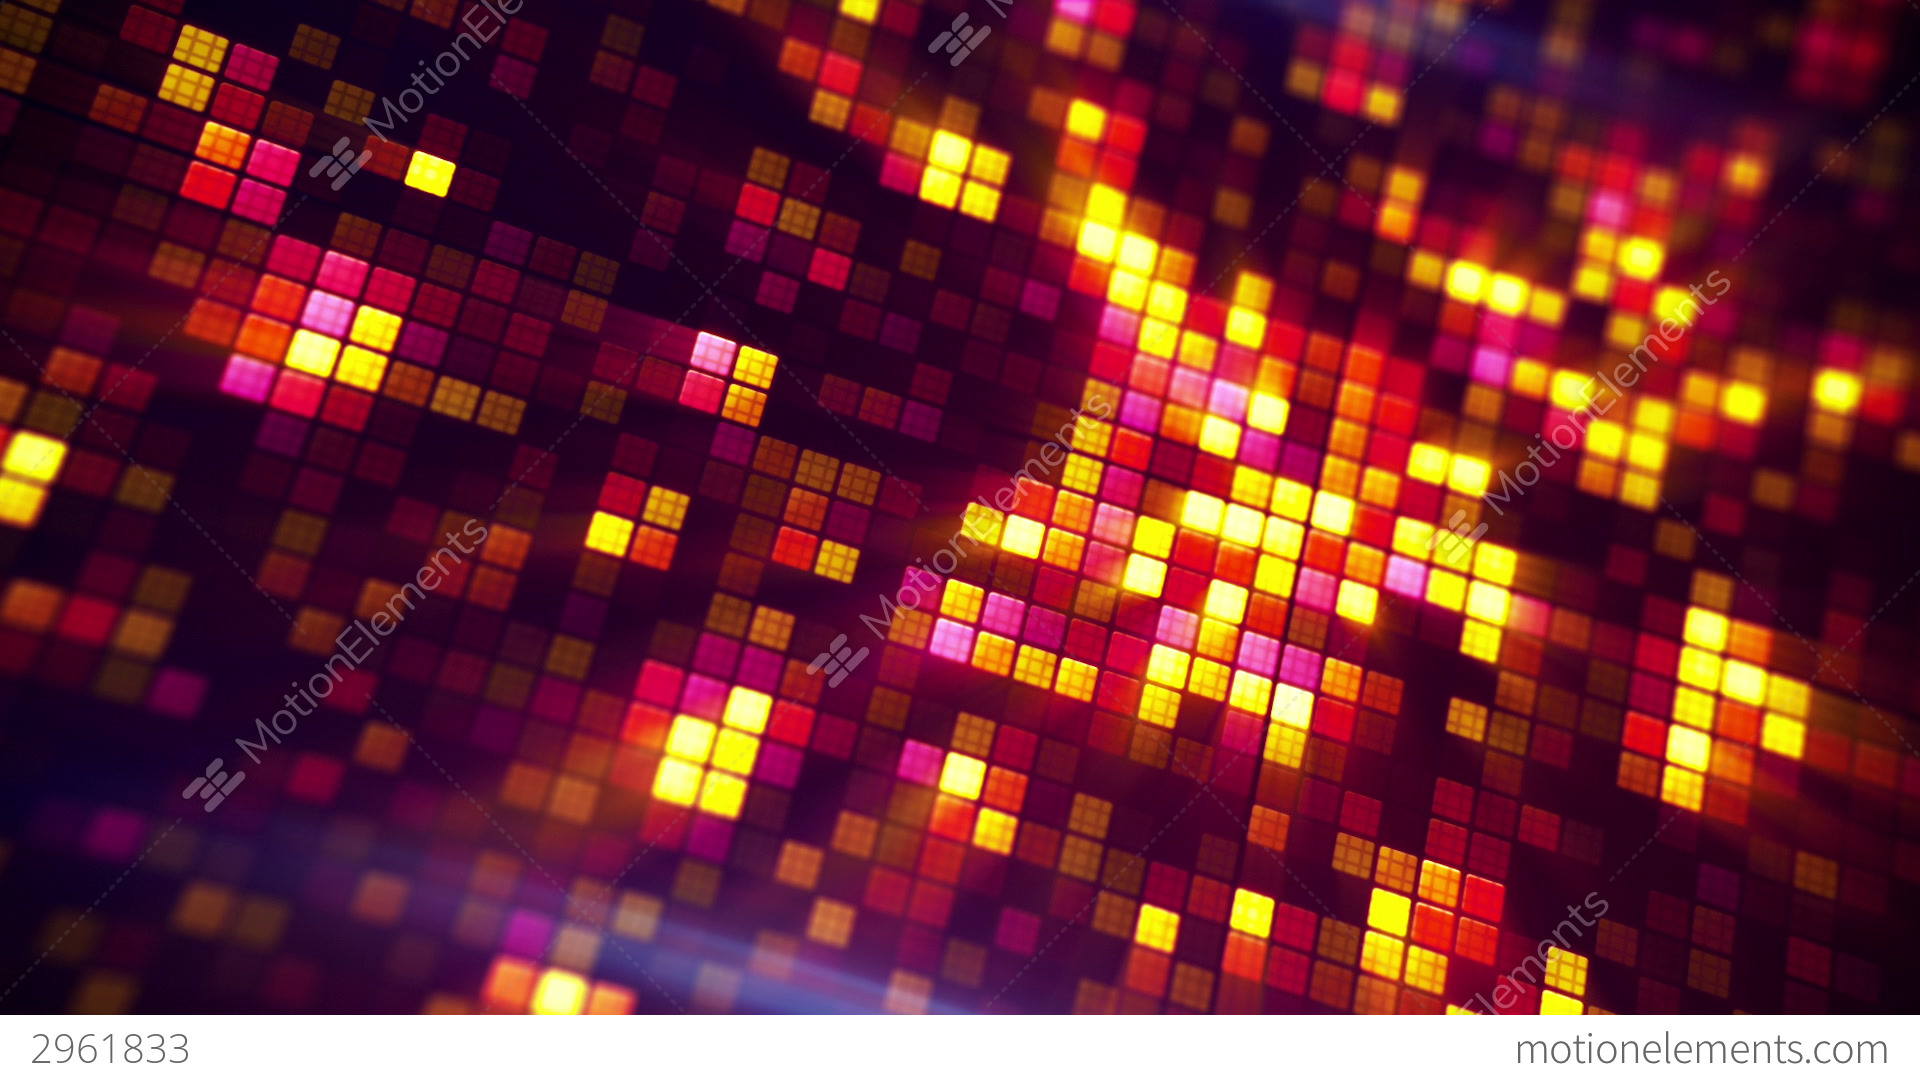 Best Wallpaper Movie Pixels - me2961833-glowing-pixels-abstract-loopable-background-hd-a0120  You Should Have_29330.jpg